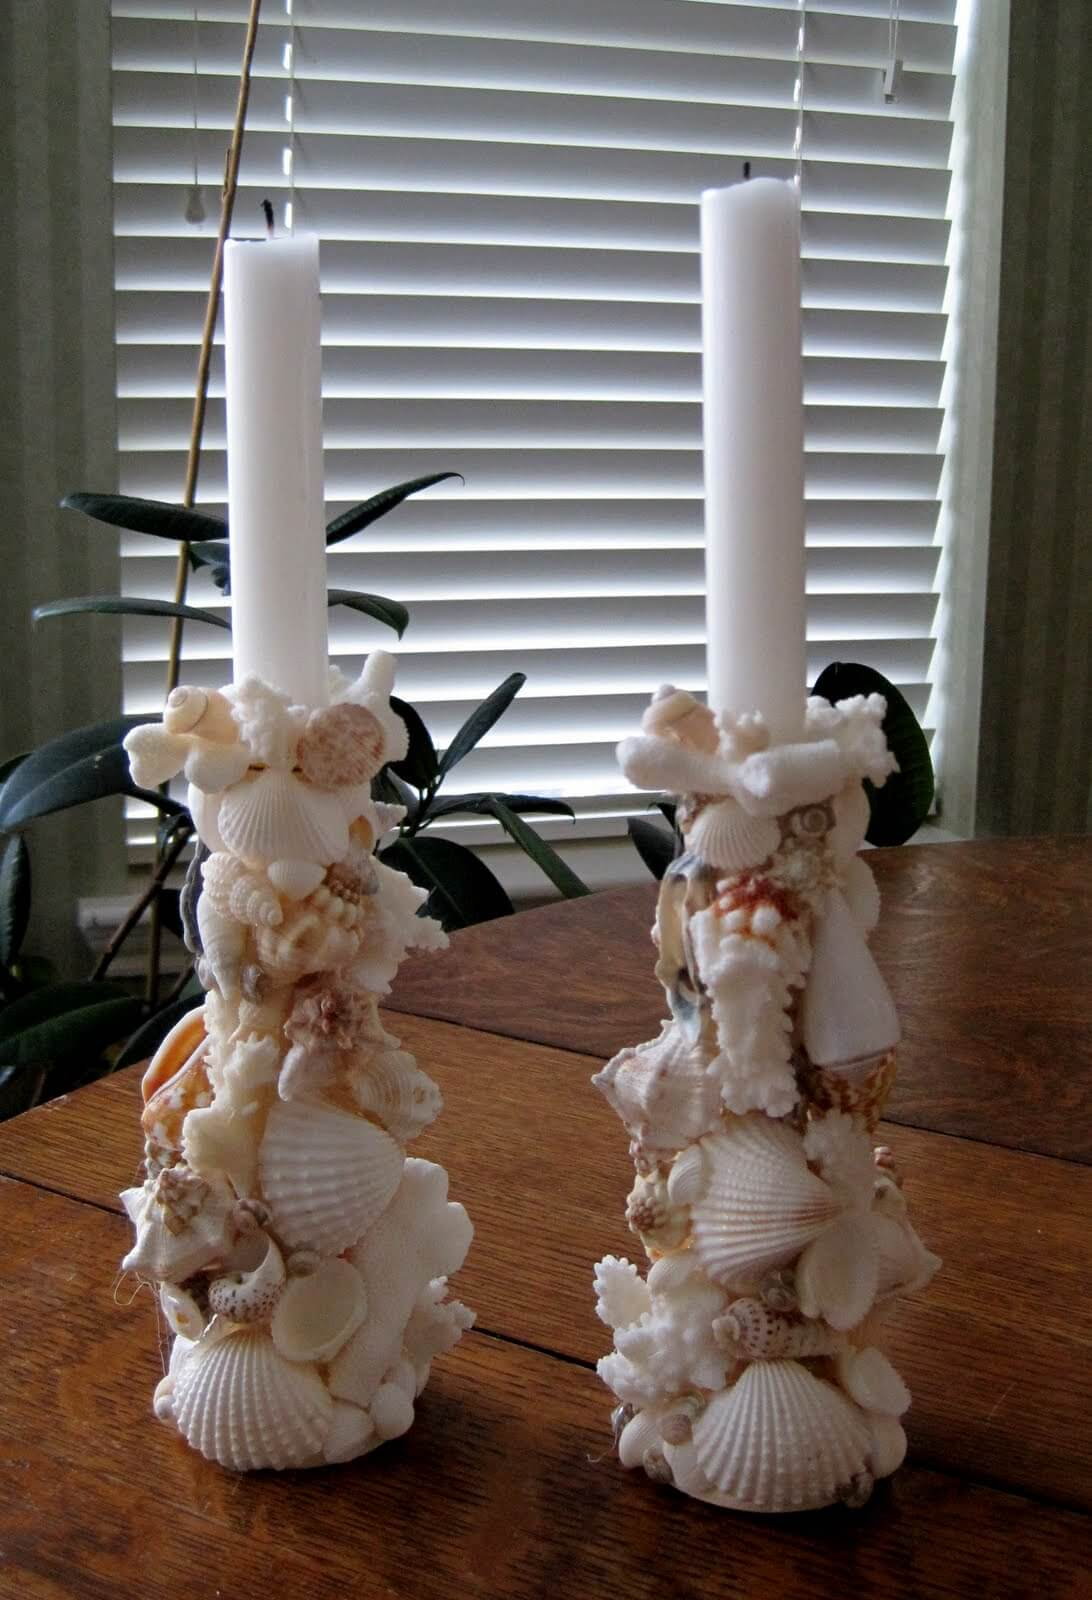 A Candelabra of Small Shells